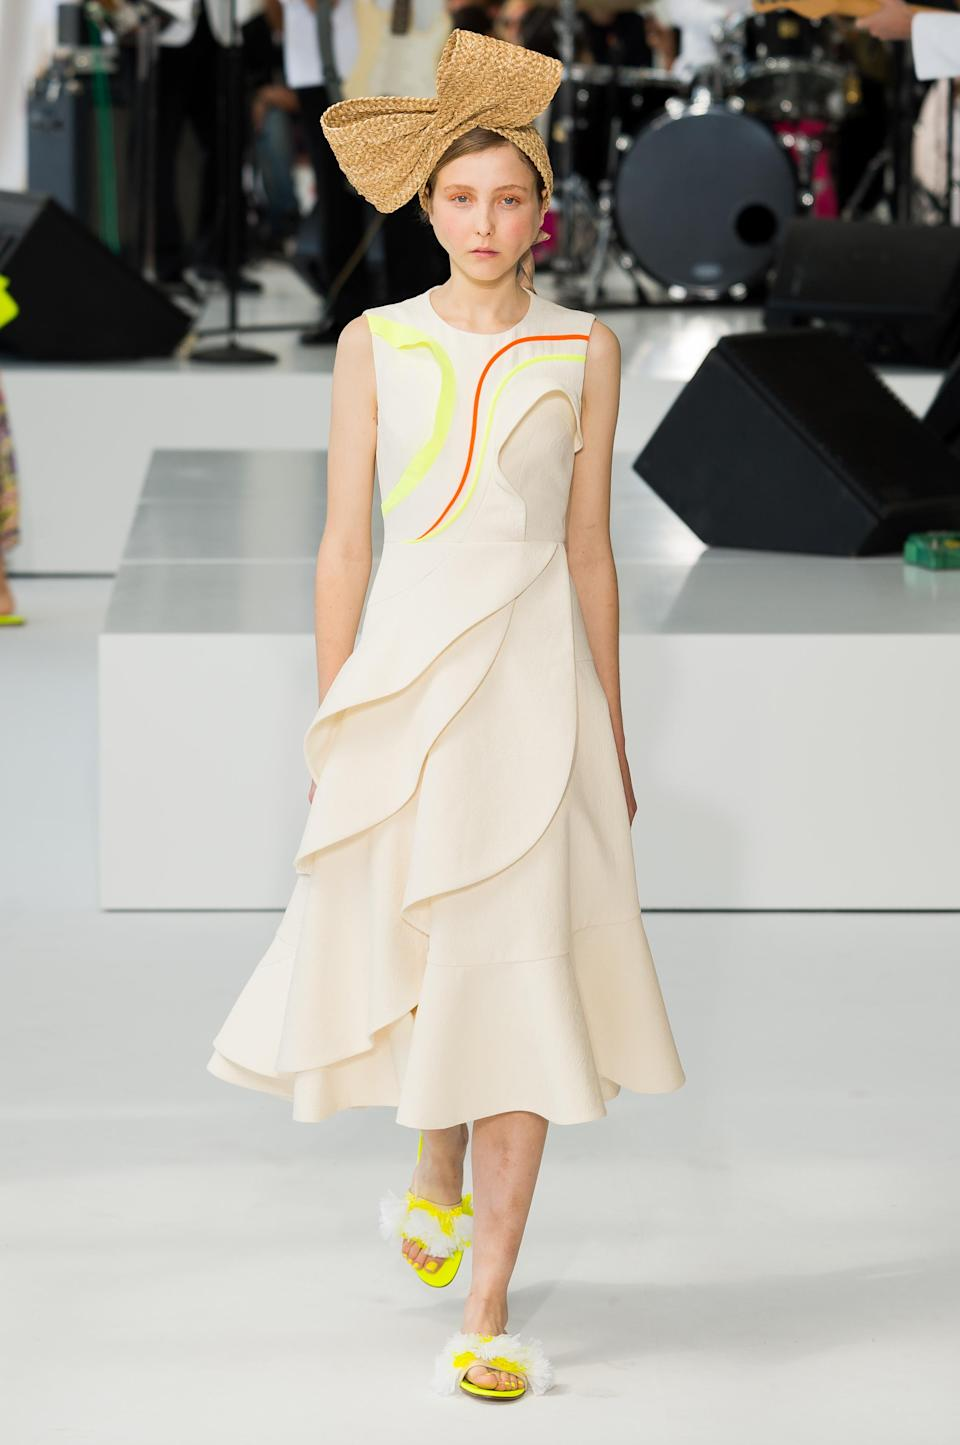 <p><i>Model wears white, A-line dress with yellow-and-orange stitching from the SS18 Delpozo collection. (Photo: IMAXtree) </i></p>